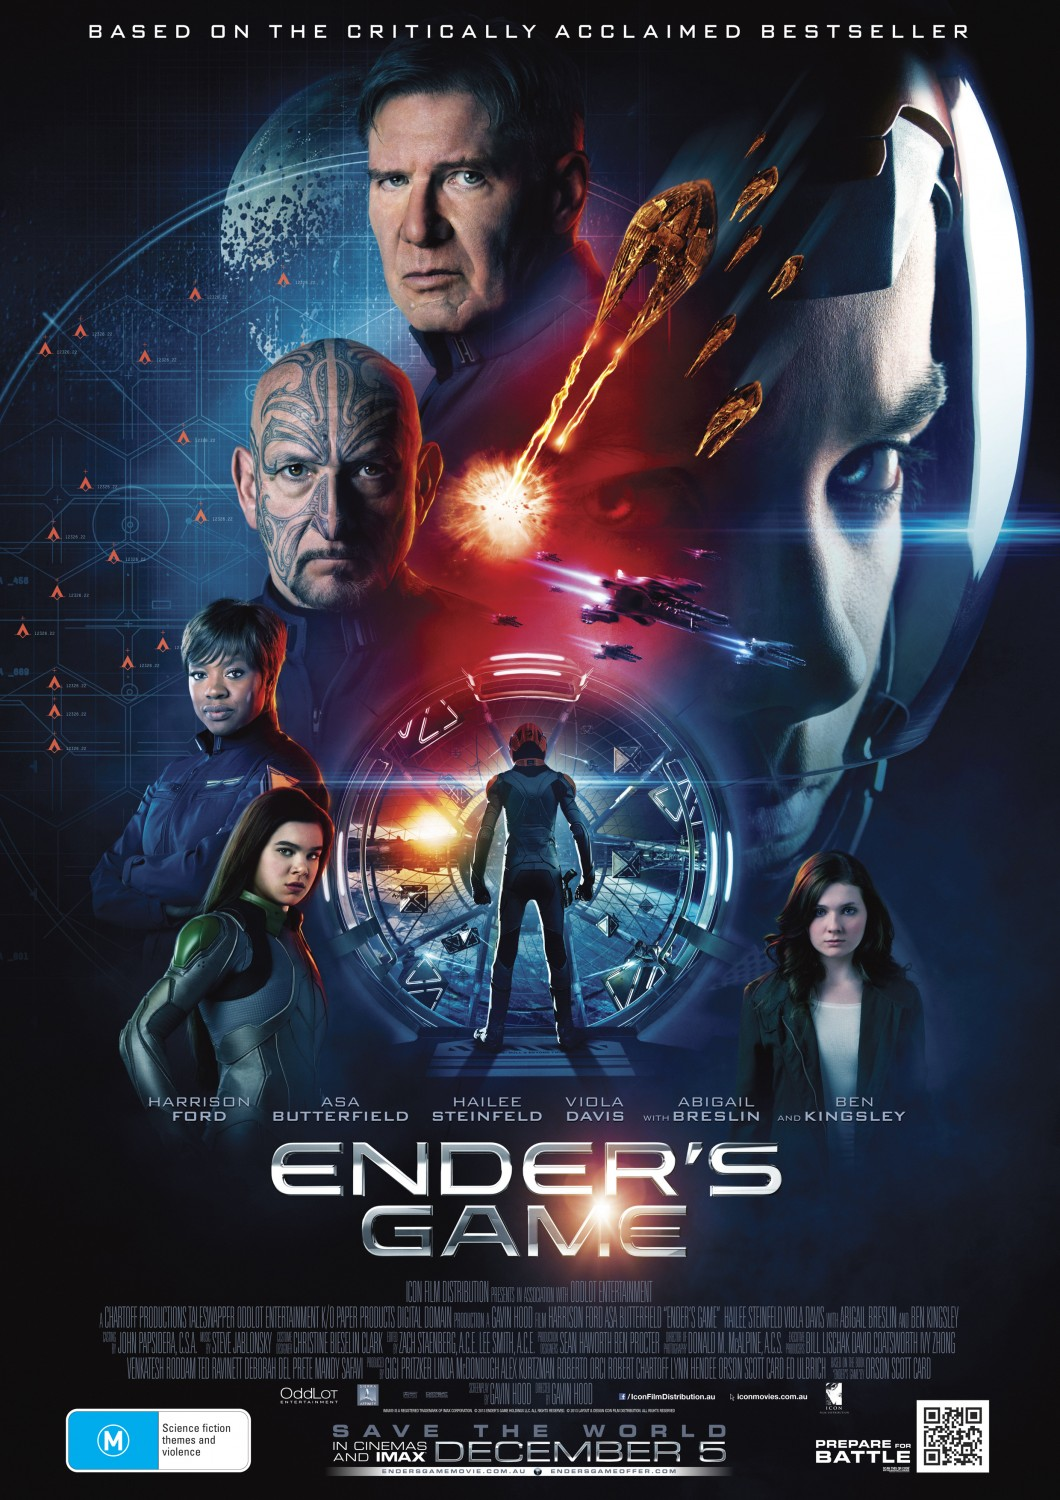 the strengths and weaknesses of humans as portrayed in the fiction enders game That cinematic melange shows both its strengths a fun science fiction movie some will enjoy ender's game for the cinema siren cinema siren ender's-game.